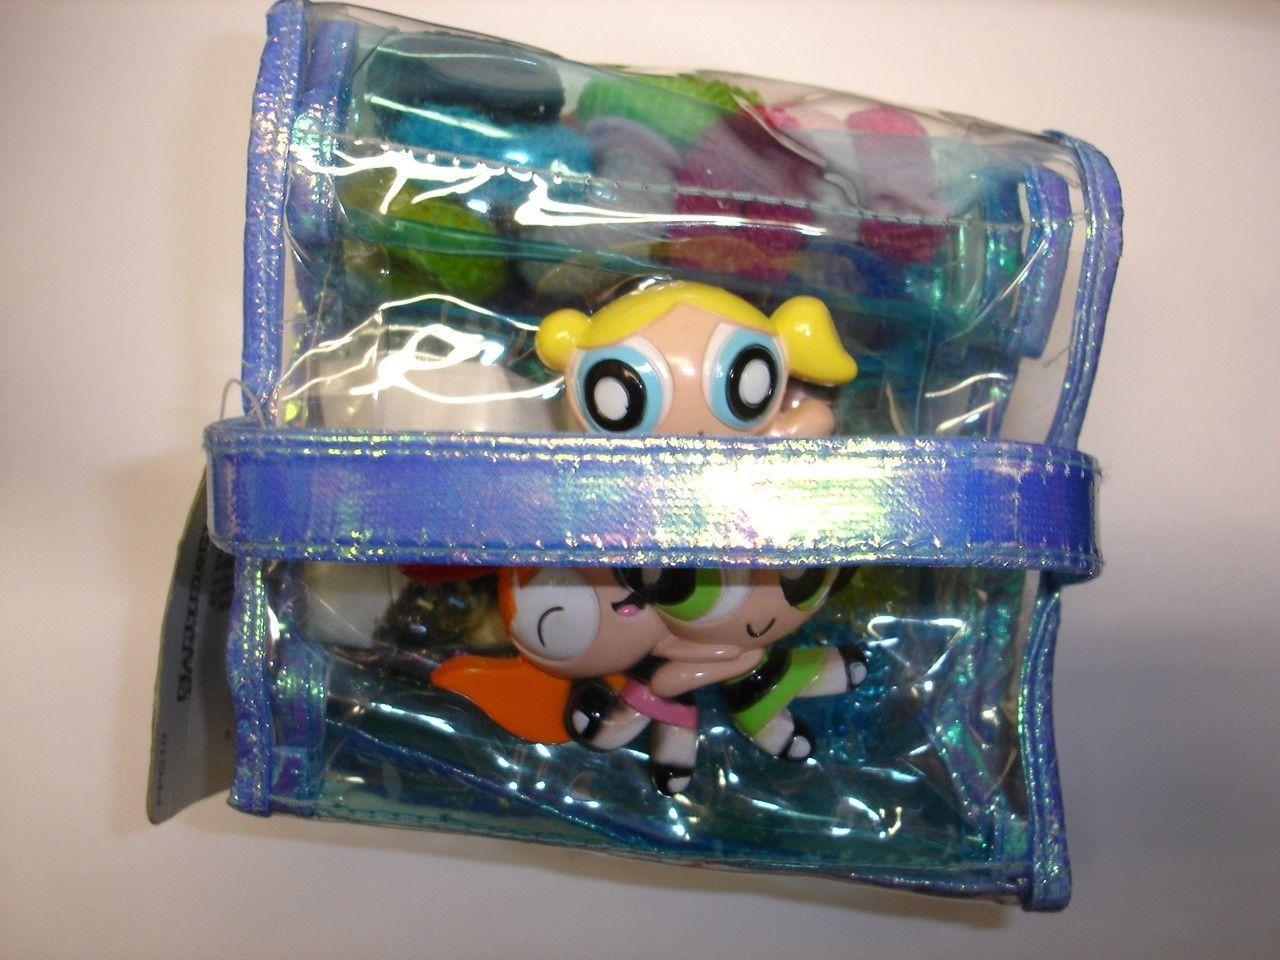 New Cartoon Network Powerpuff Girls mirror & hair accessories set